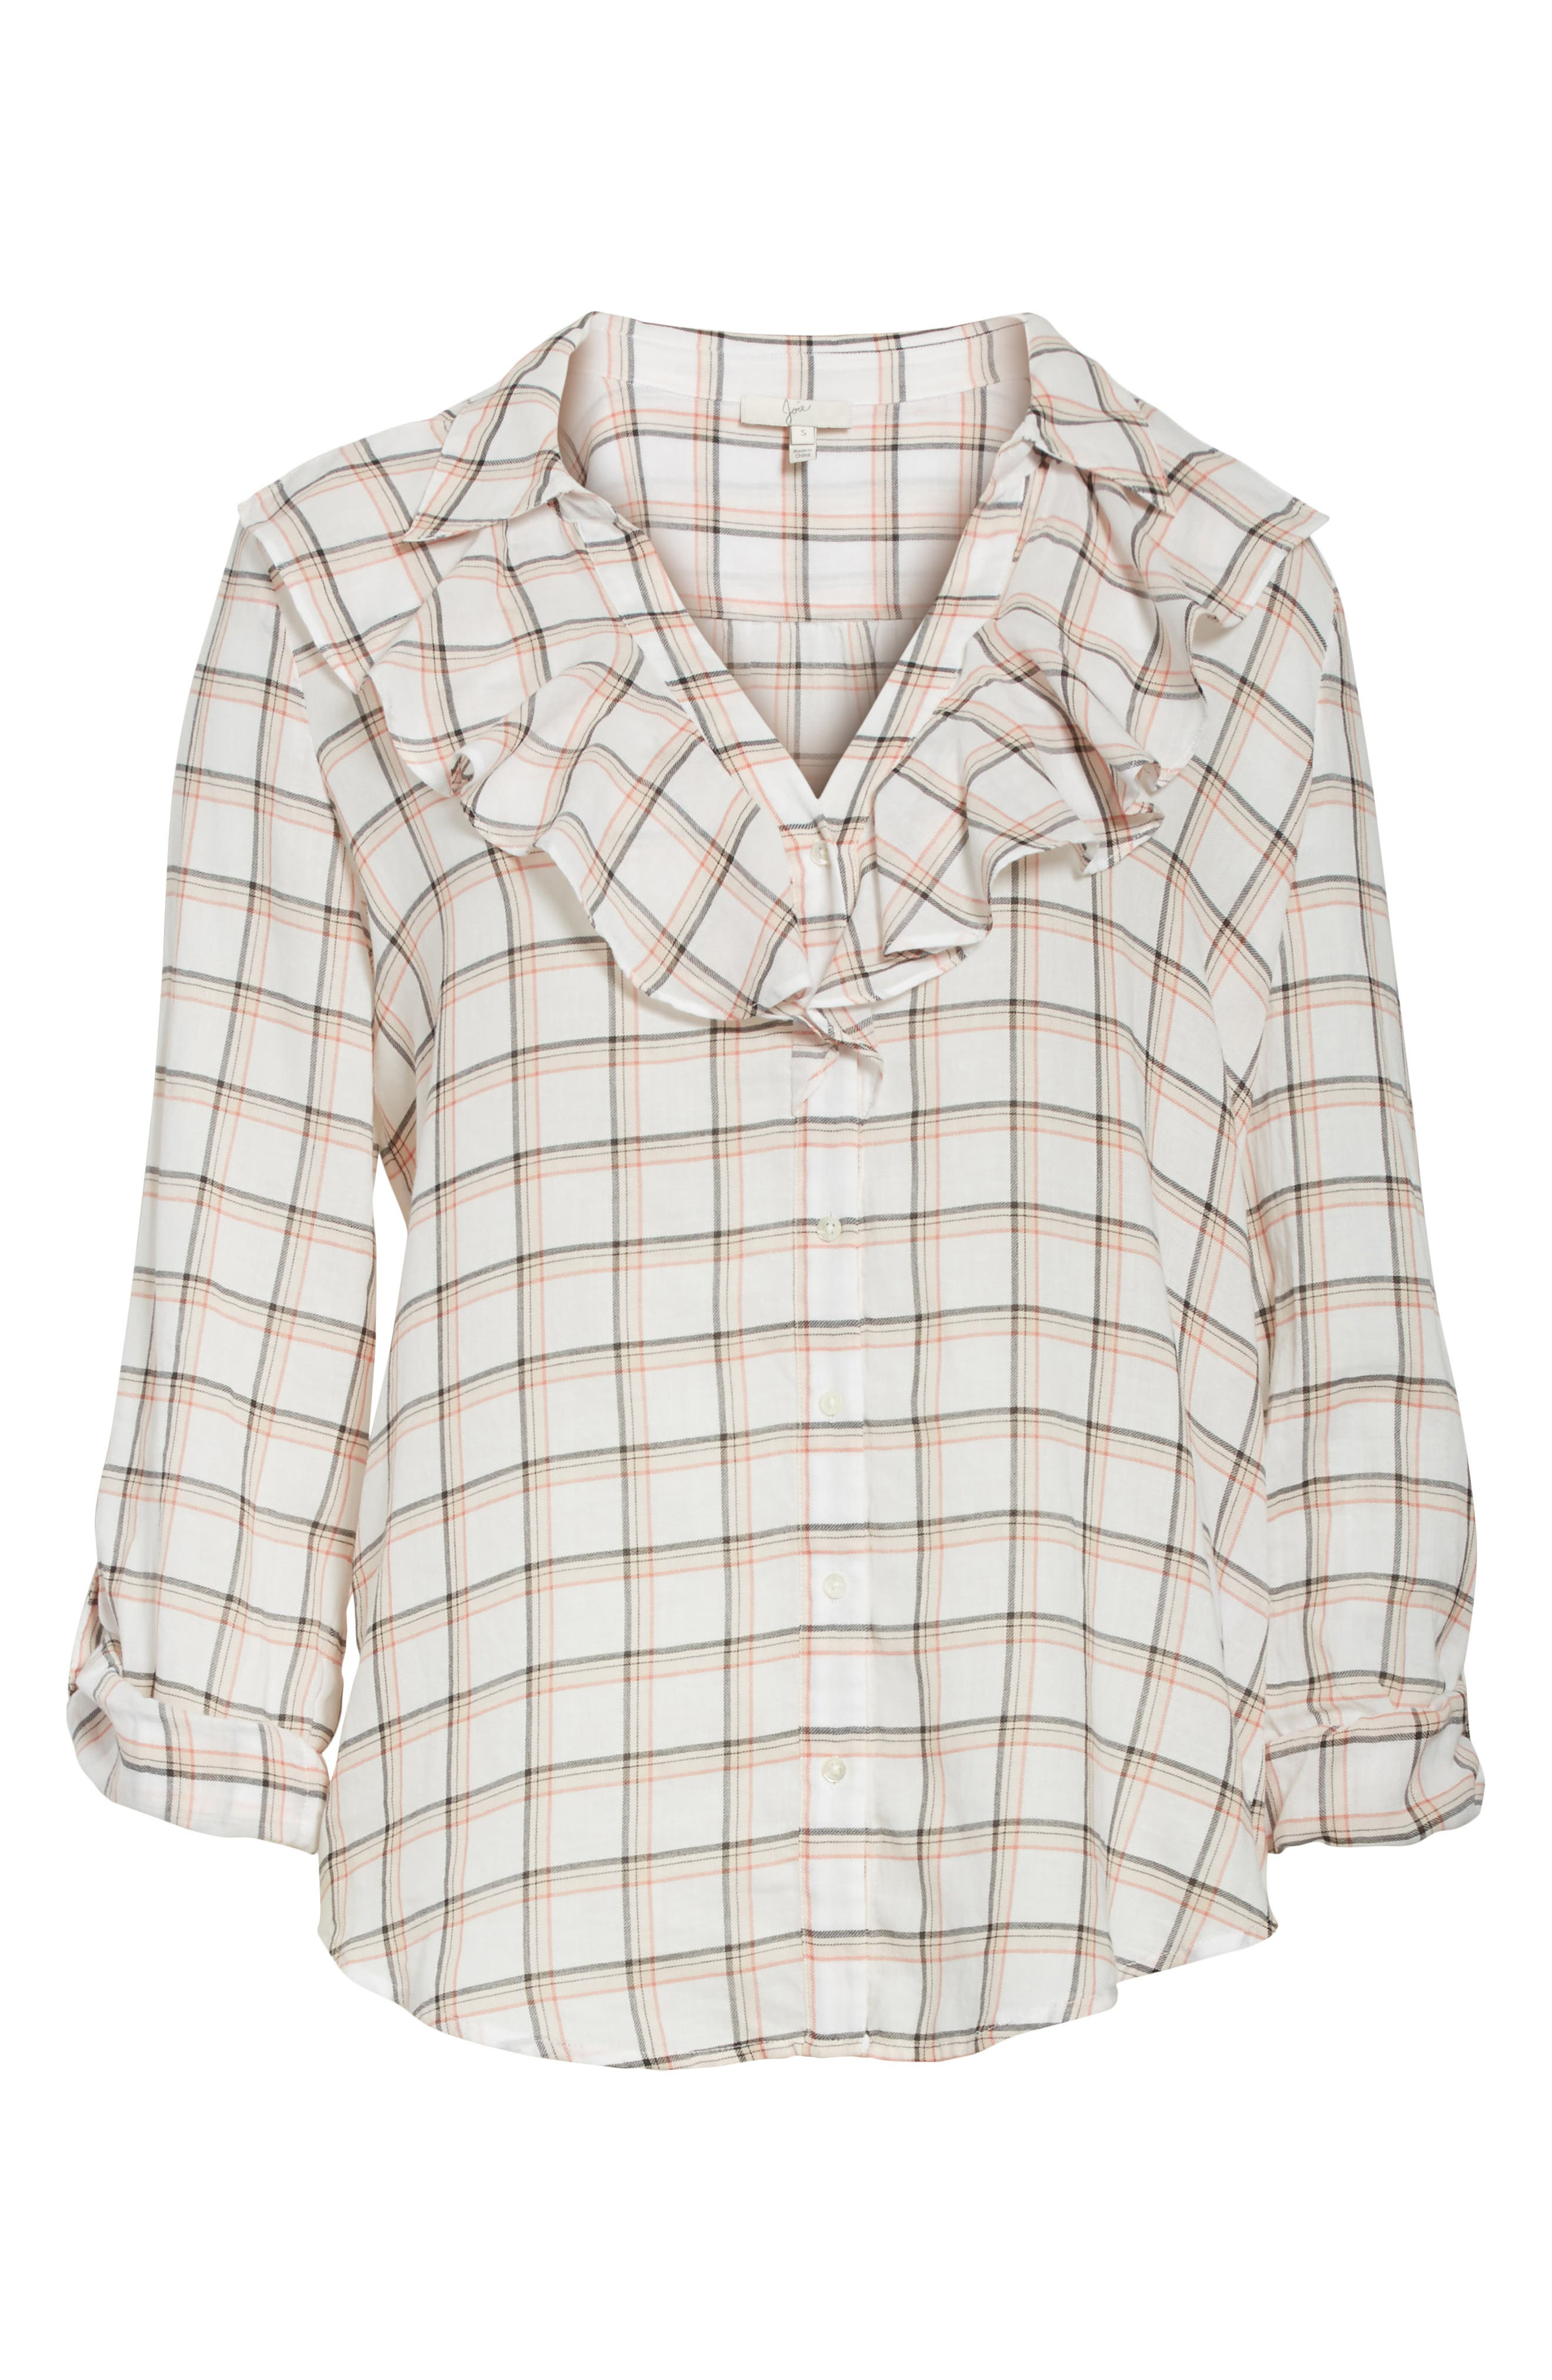 Fara Plaid Top,                             Alternate thumbnail 6, color,                             Porcelain